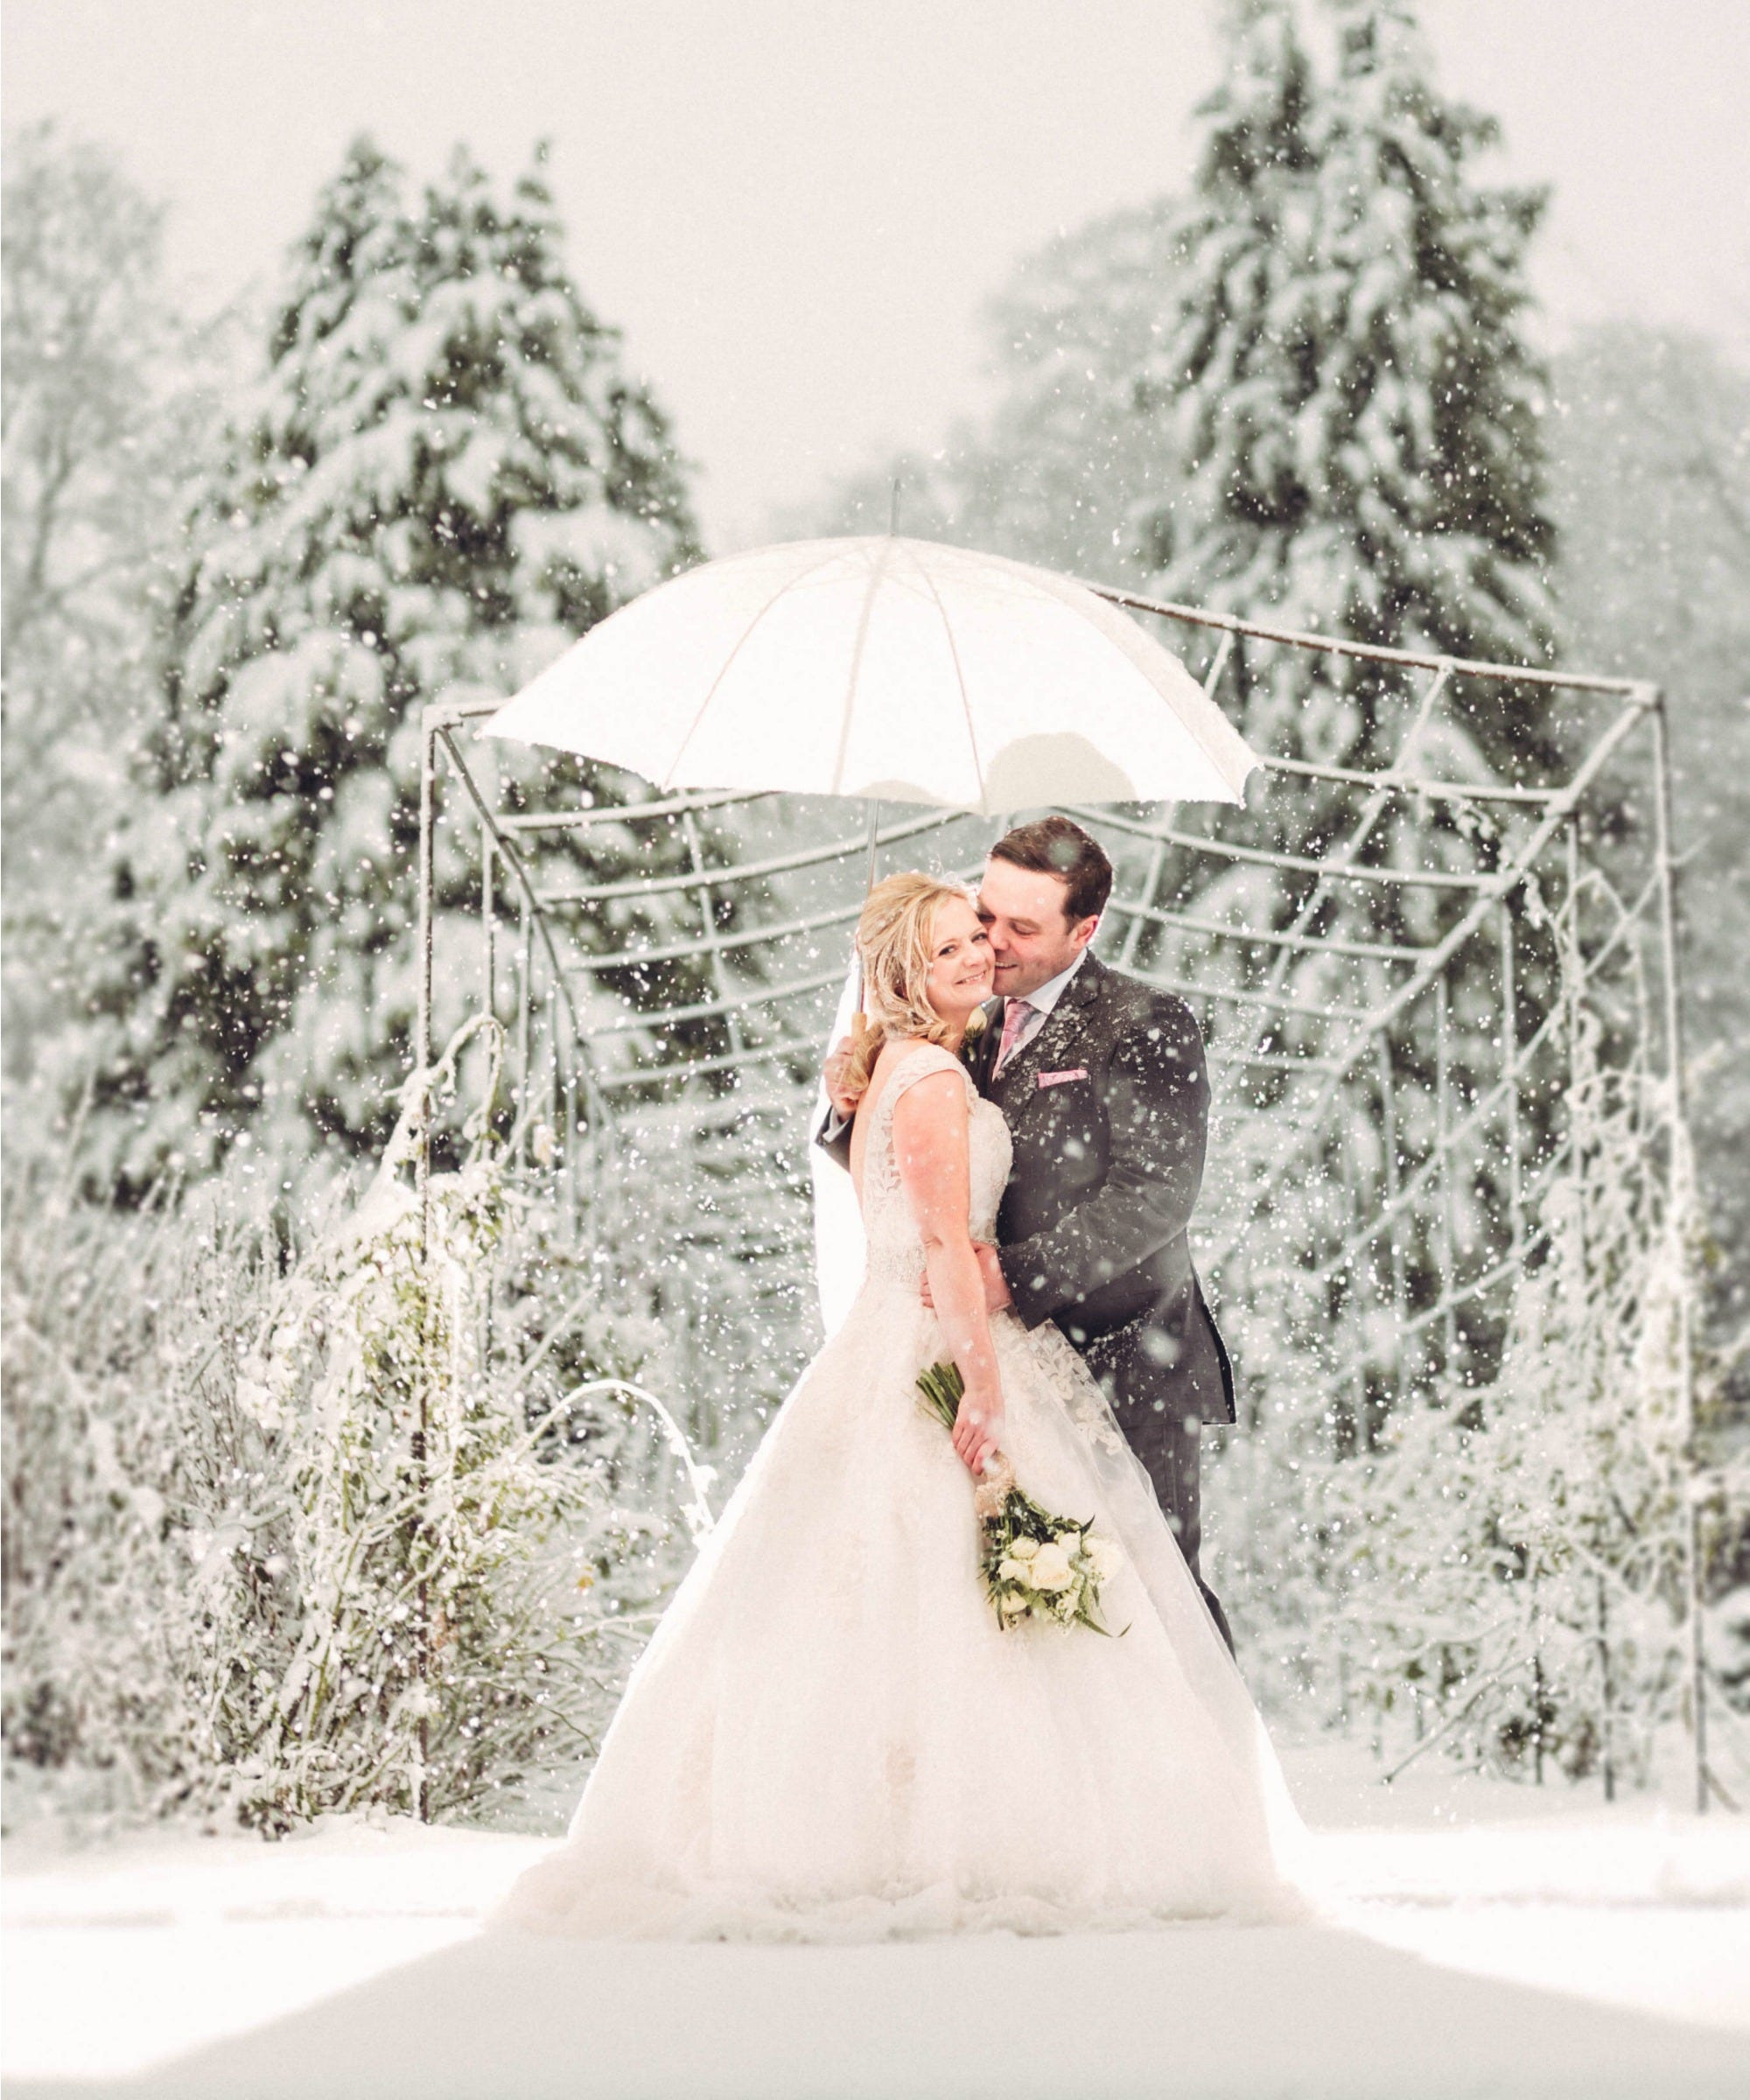 Surprise Snowstorm Creates Magical Photos For Newlyweds